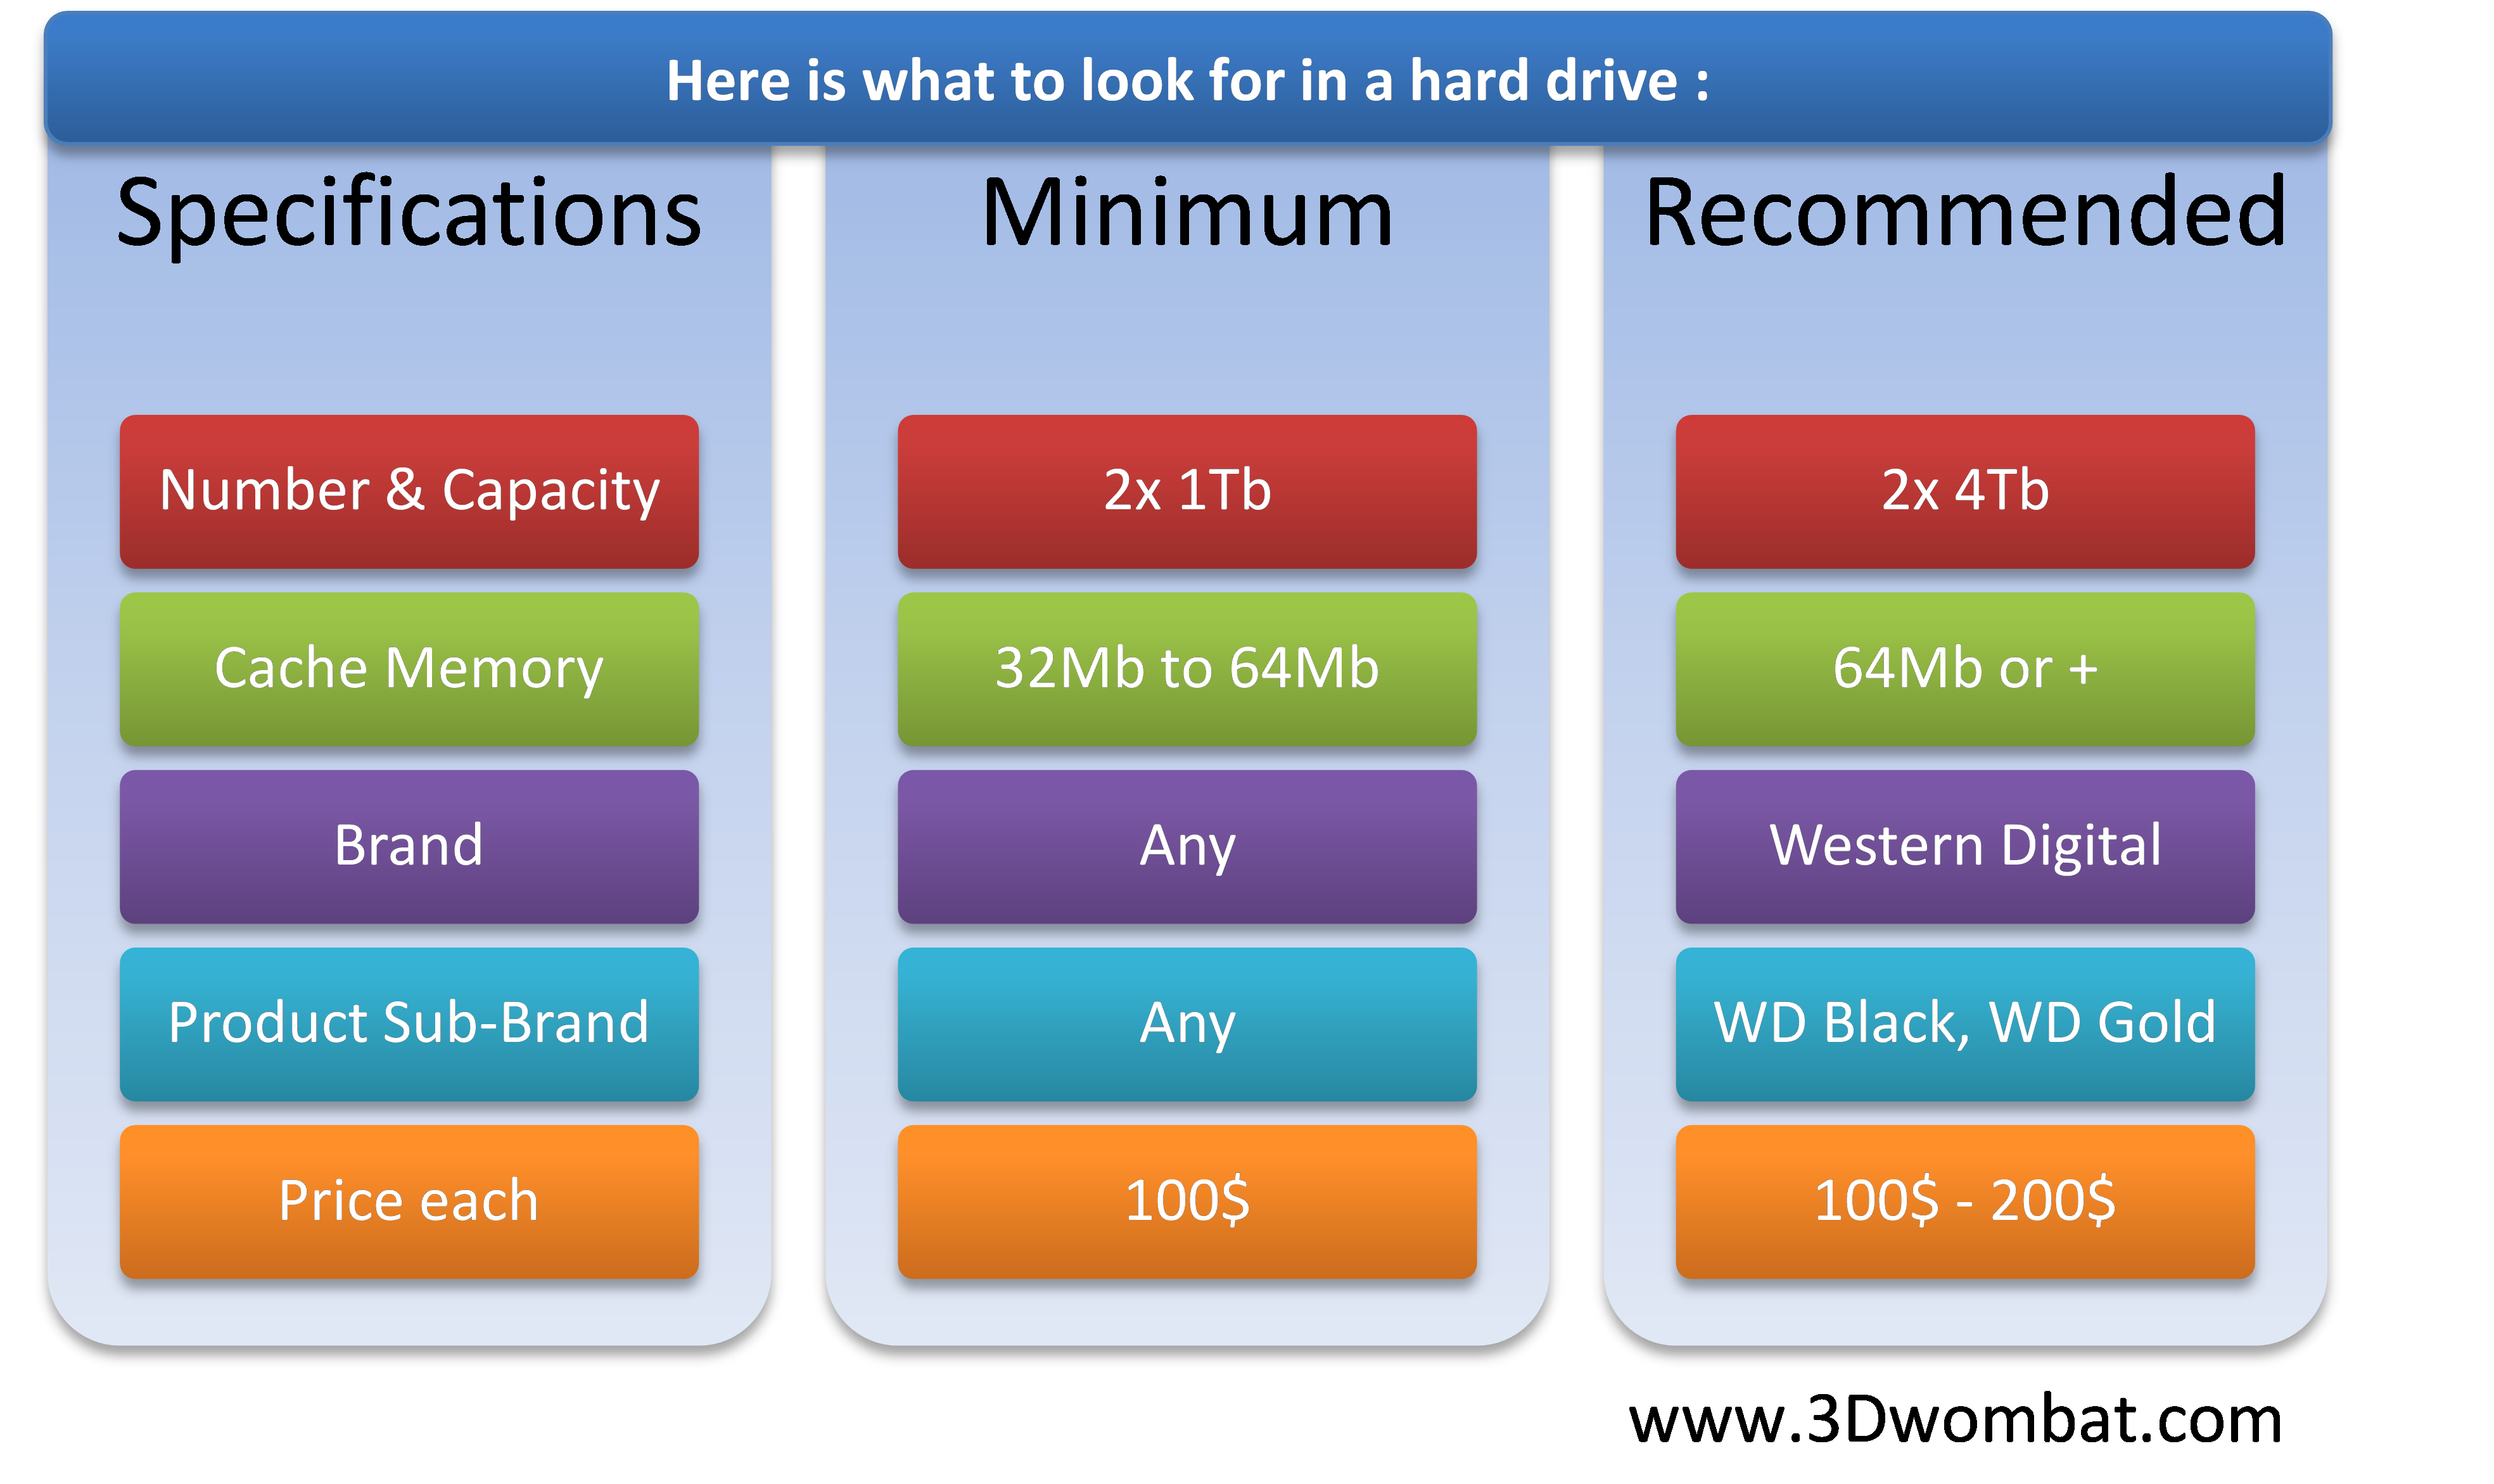 hard drive specification summary chart